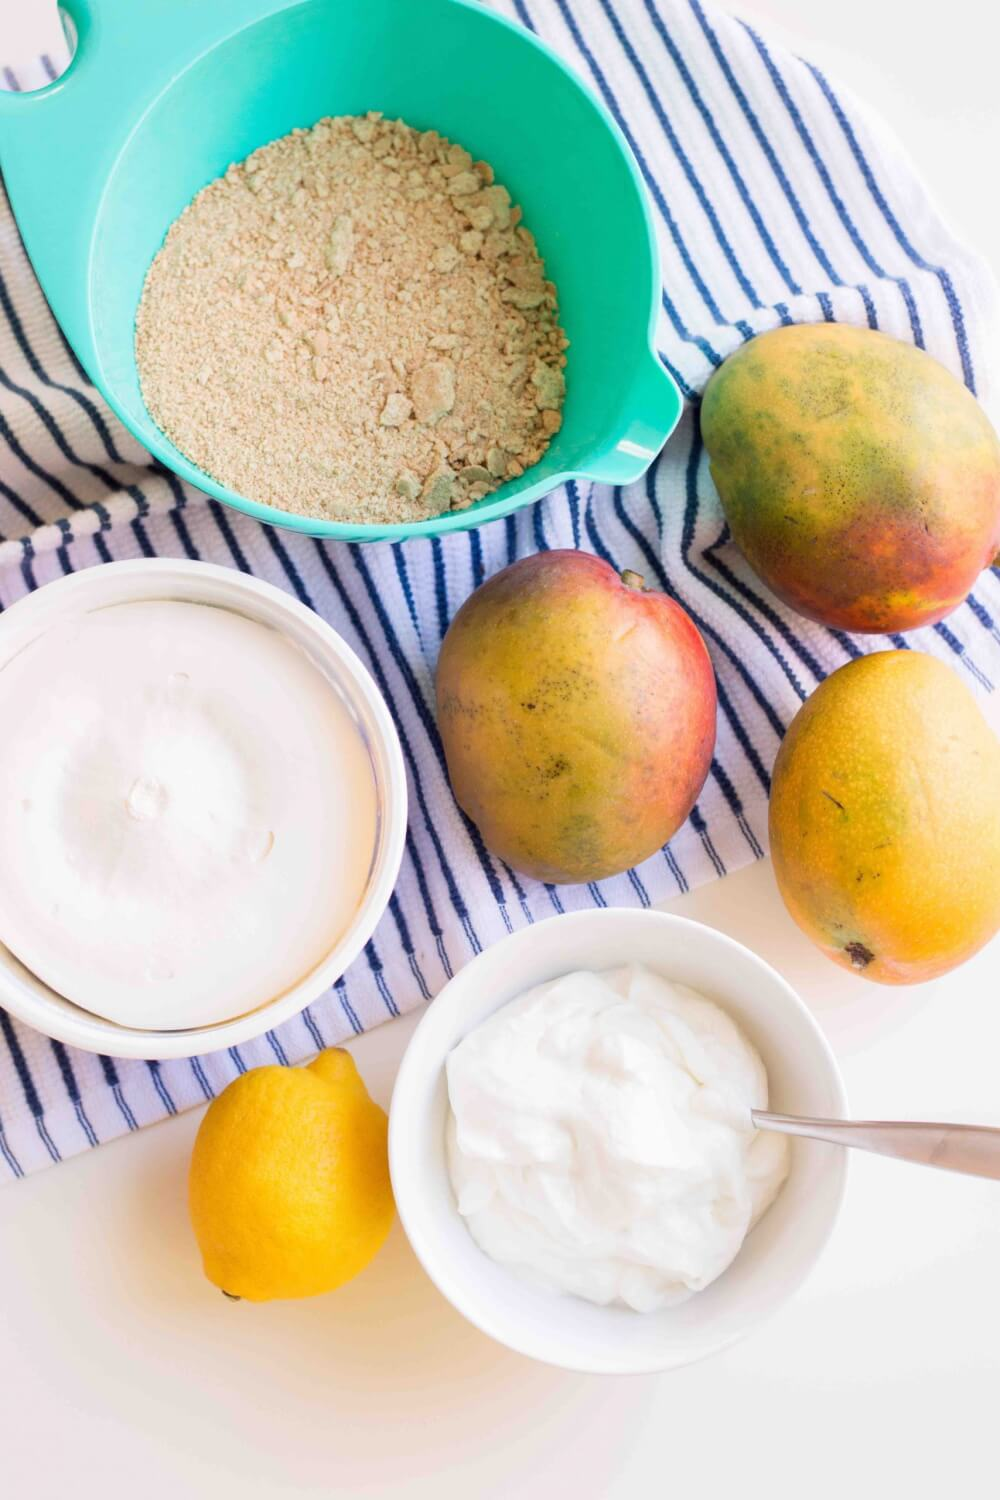 Mango Mousse Cake ingredients